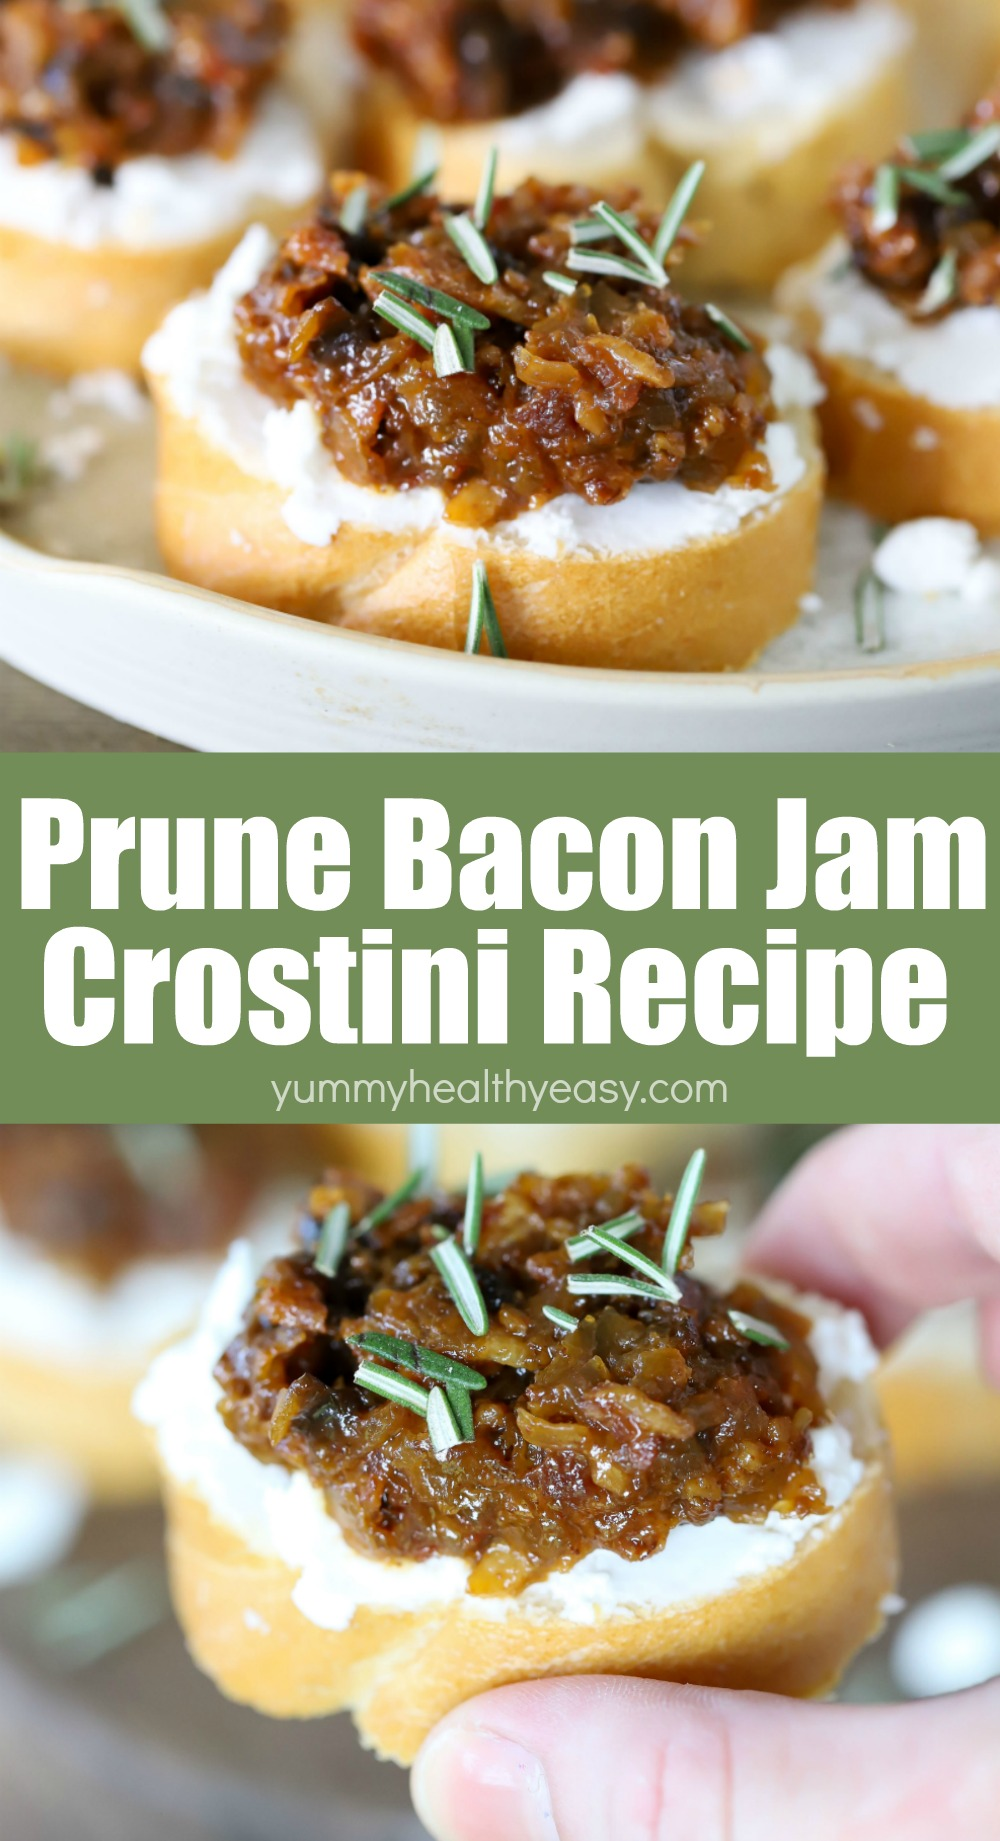 This California Prune Bacon Jam Crostini Recipe is absolutely scrumptious! It might sound a little different from a normal crostini - but the flavors of prunes, bacon & goat cheese on a toasted baguette are absolutely INCREDIBLE together. You will love it!